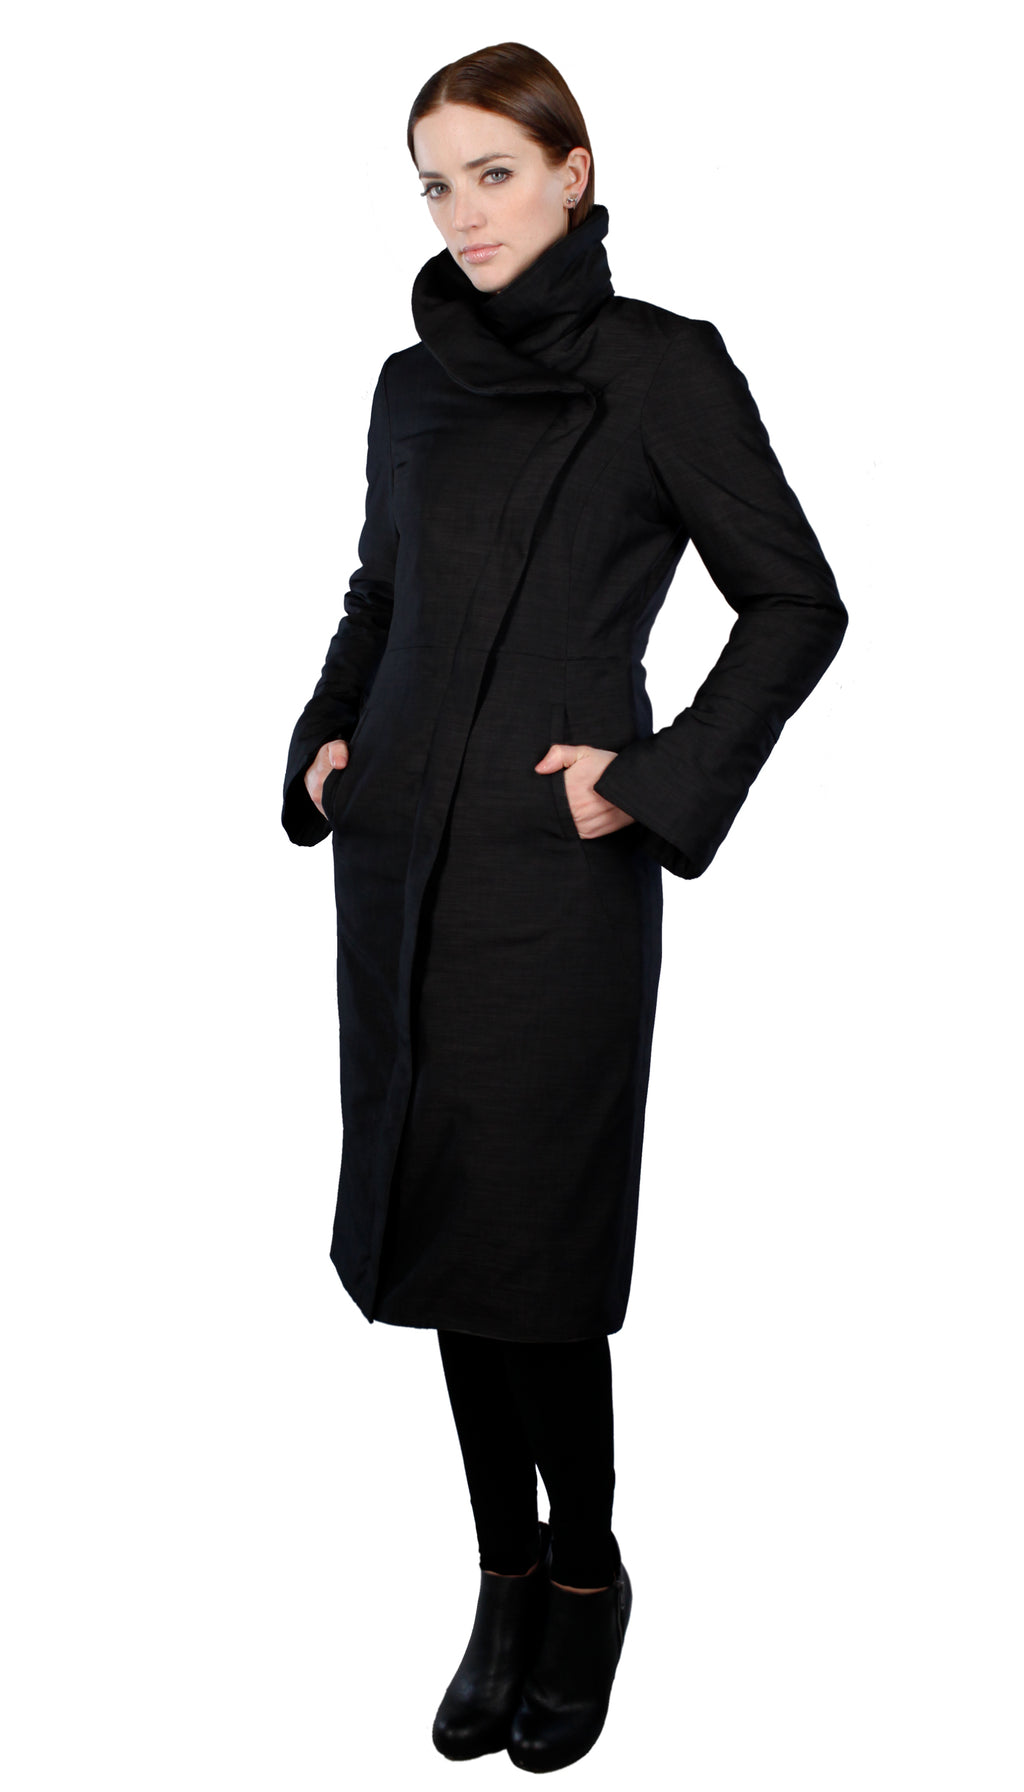 High Collar Thinsulated Zip Maxi Coat/ Black